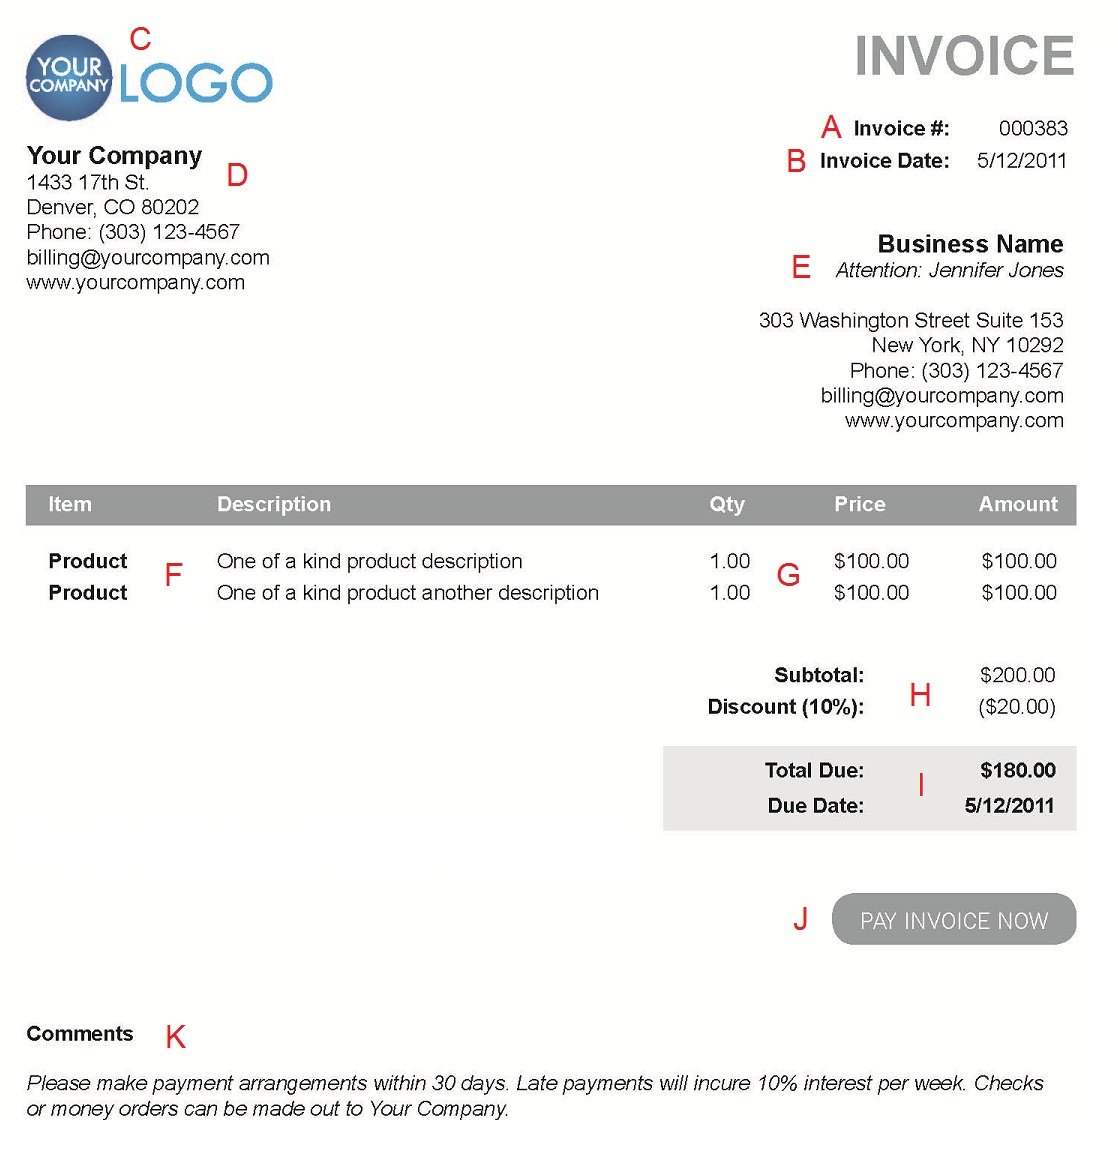 Ultrablogus  Pleasant The  Different Sections Of An Electronic Payment Invoice With Extraordinary A  With Adorable Artist Invoice Template Also Sample Invoice For Services Rendered In Addition International Commercial Invoice Template And  Mustang Gt Invoice As Well As Invoice Terms And Conditions Example Additionally Ups Invoice Tracking From Paysimplecom With Ultrablogus  Extraordinary The  Different Sections Of An Electronic Payment Invoice With Adorable A  And Pleasant Artist Invoice Template Also Sample Invoice For Services Rendered In Addition International Commercial Invoice Template From Paysimplecom